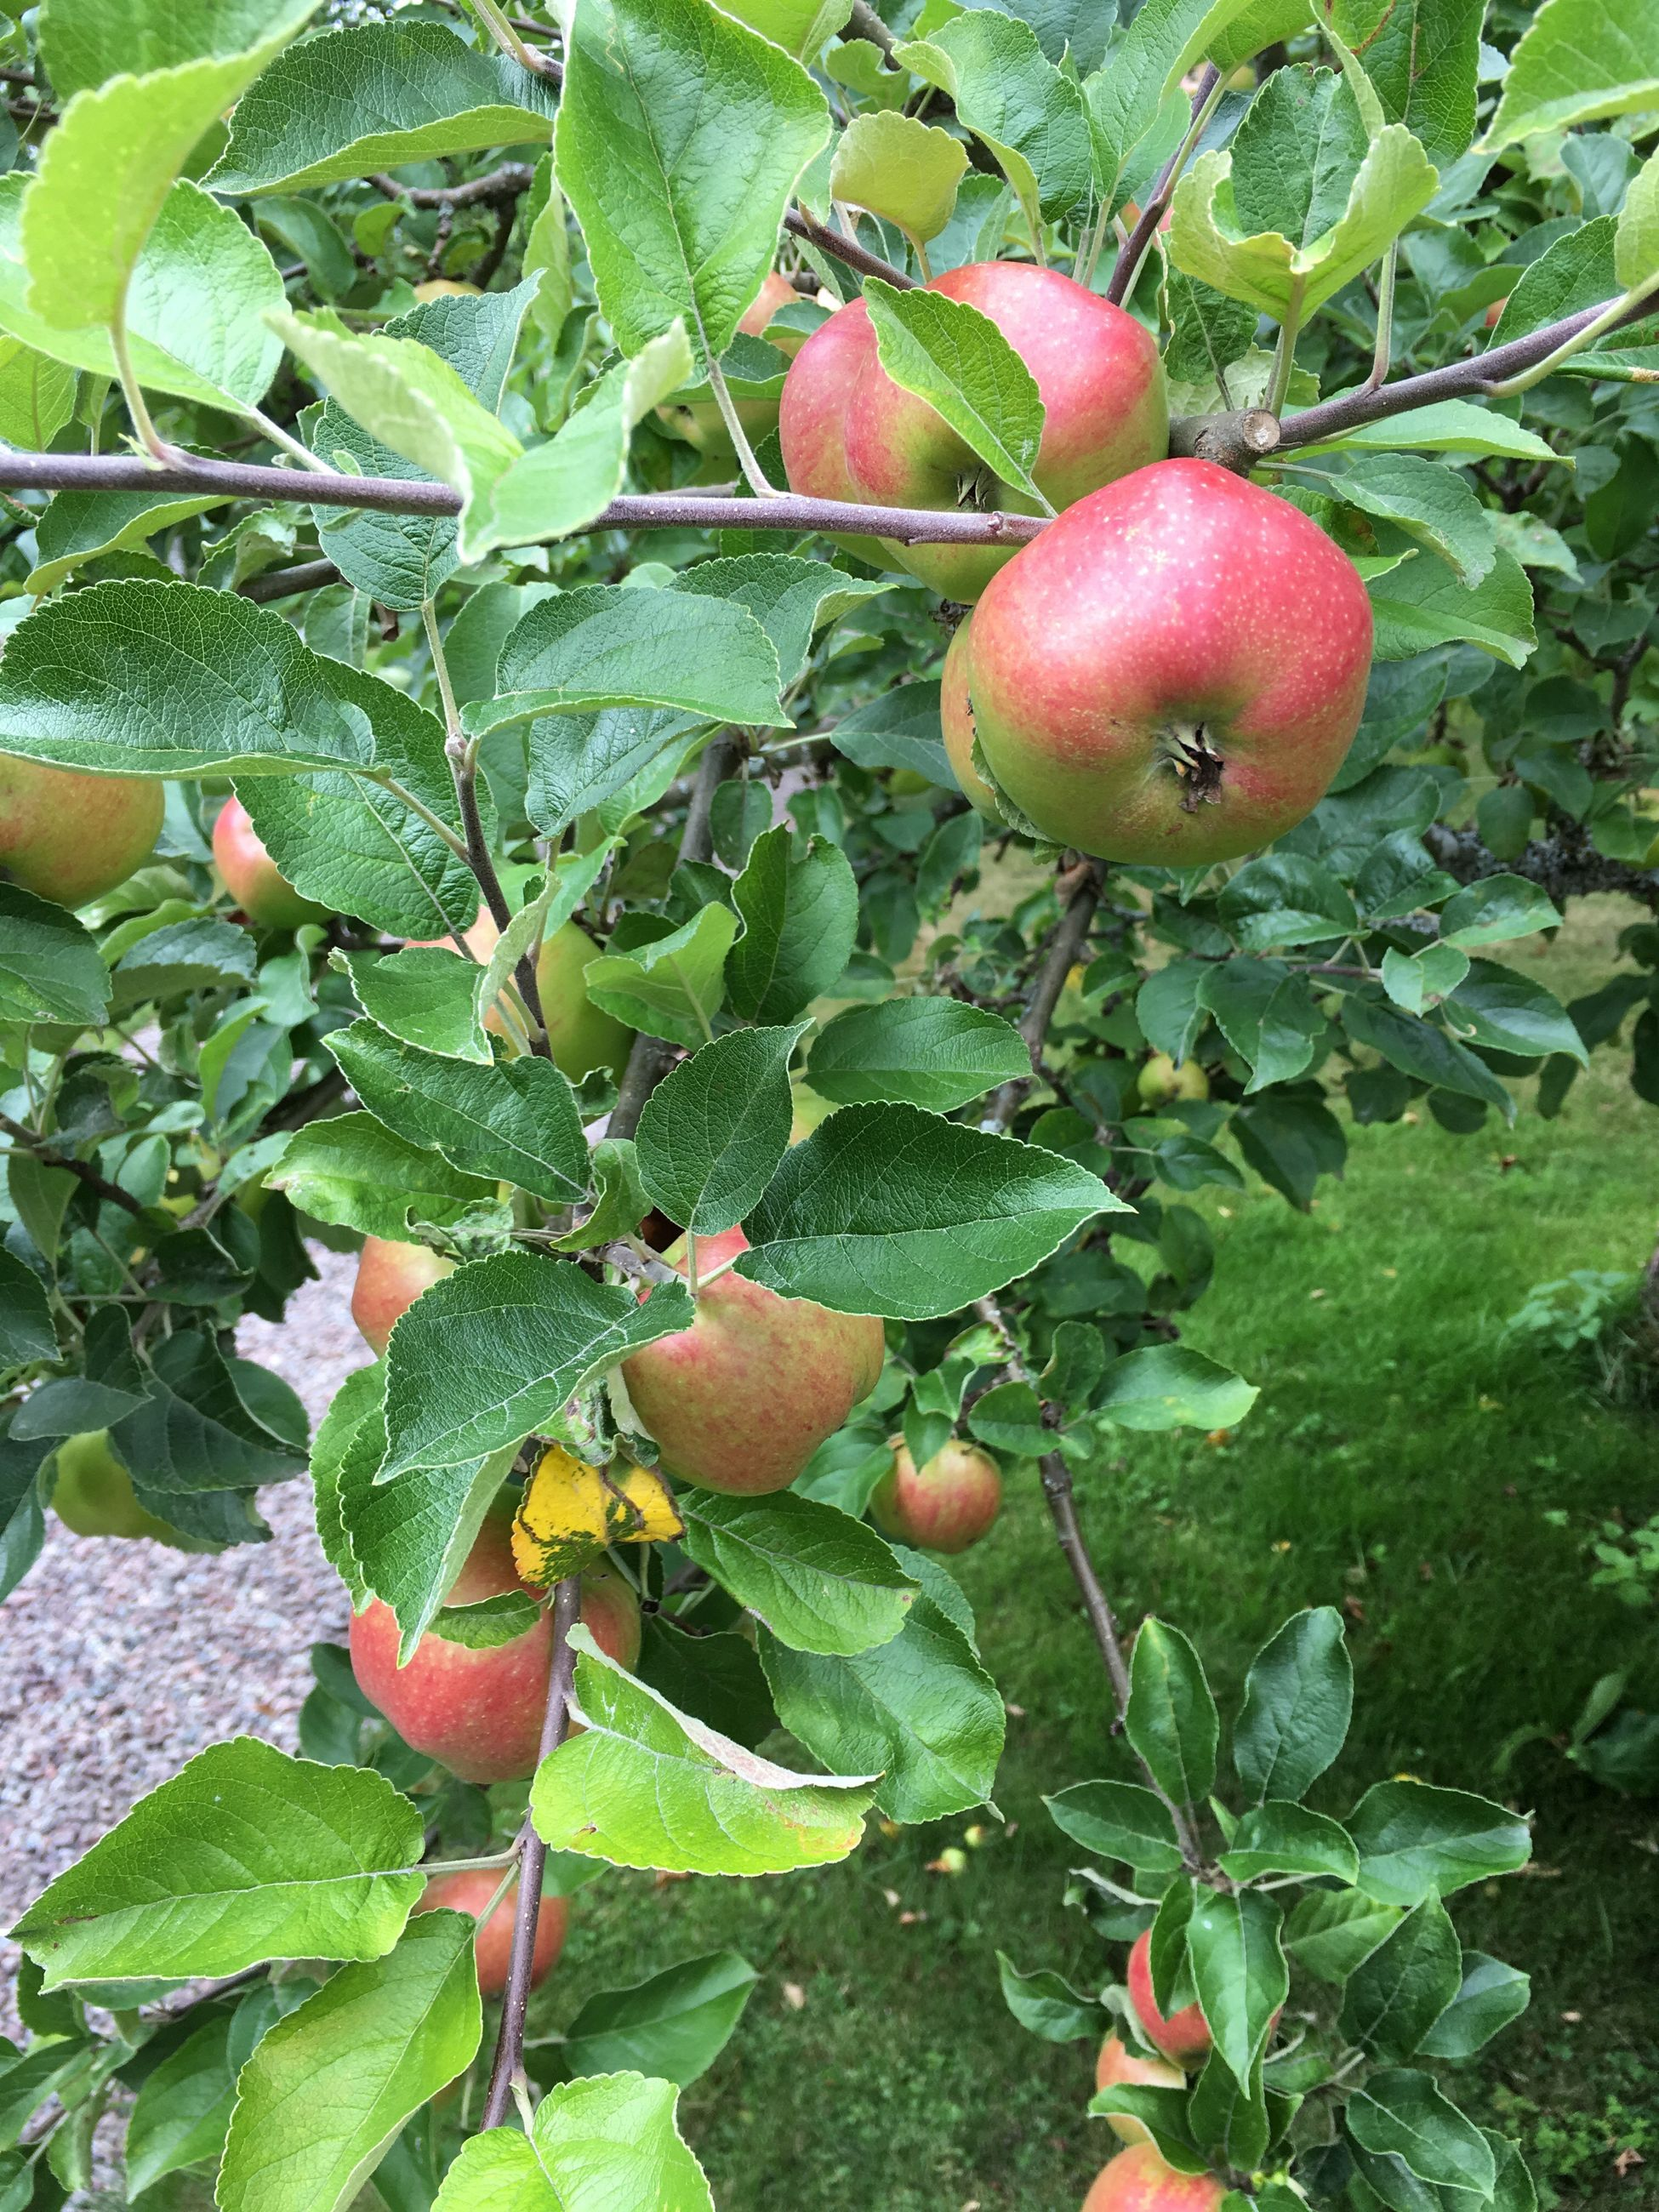 fruit, food and drink, food, growth, healthy eating, freshness, leaf, close-up, green color, apple - fruit, red, organic, nature, agriculture, day, outdoors, growing, vibrant color, beauty in nature